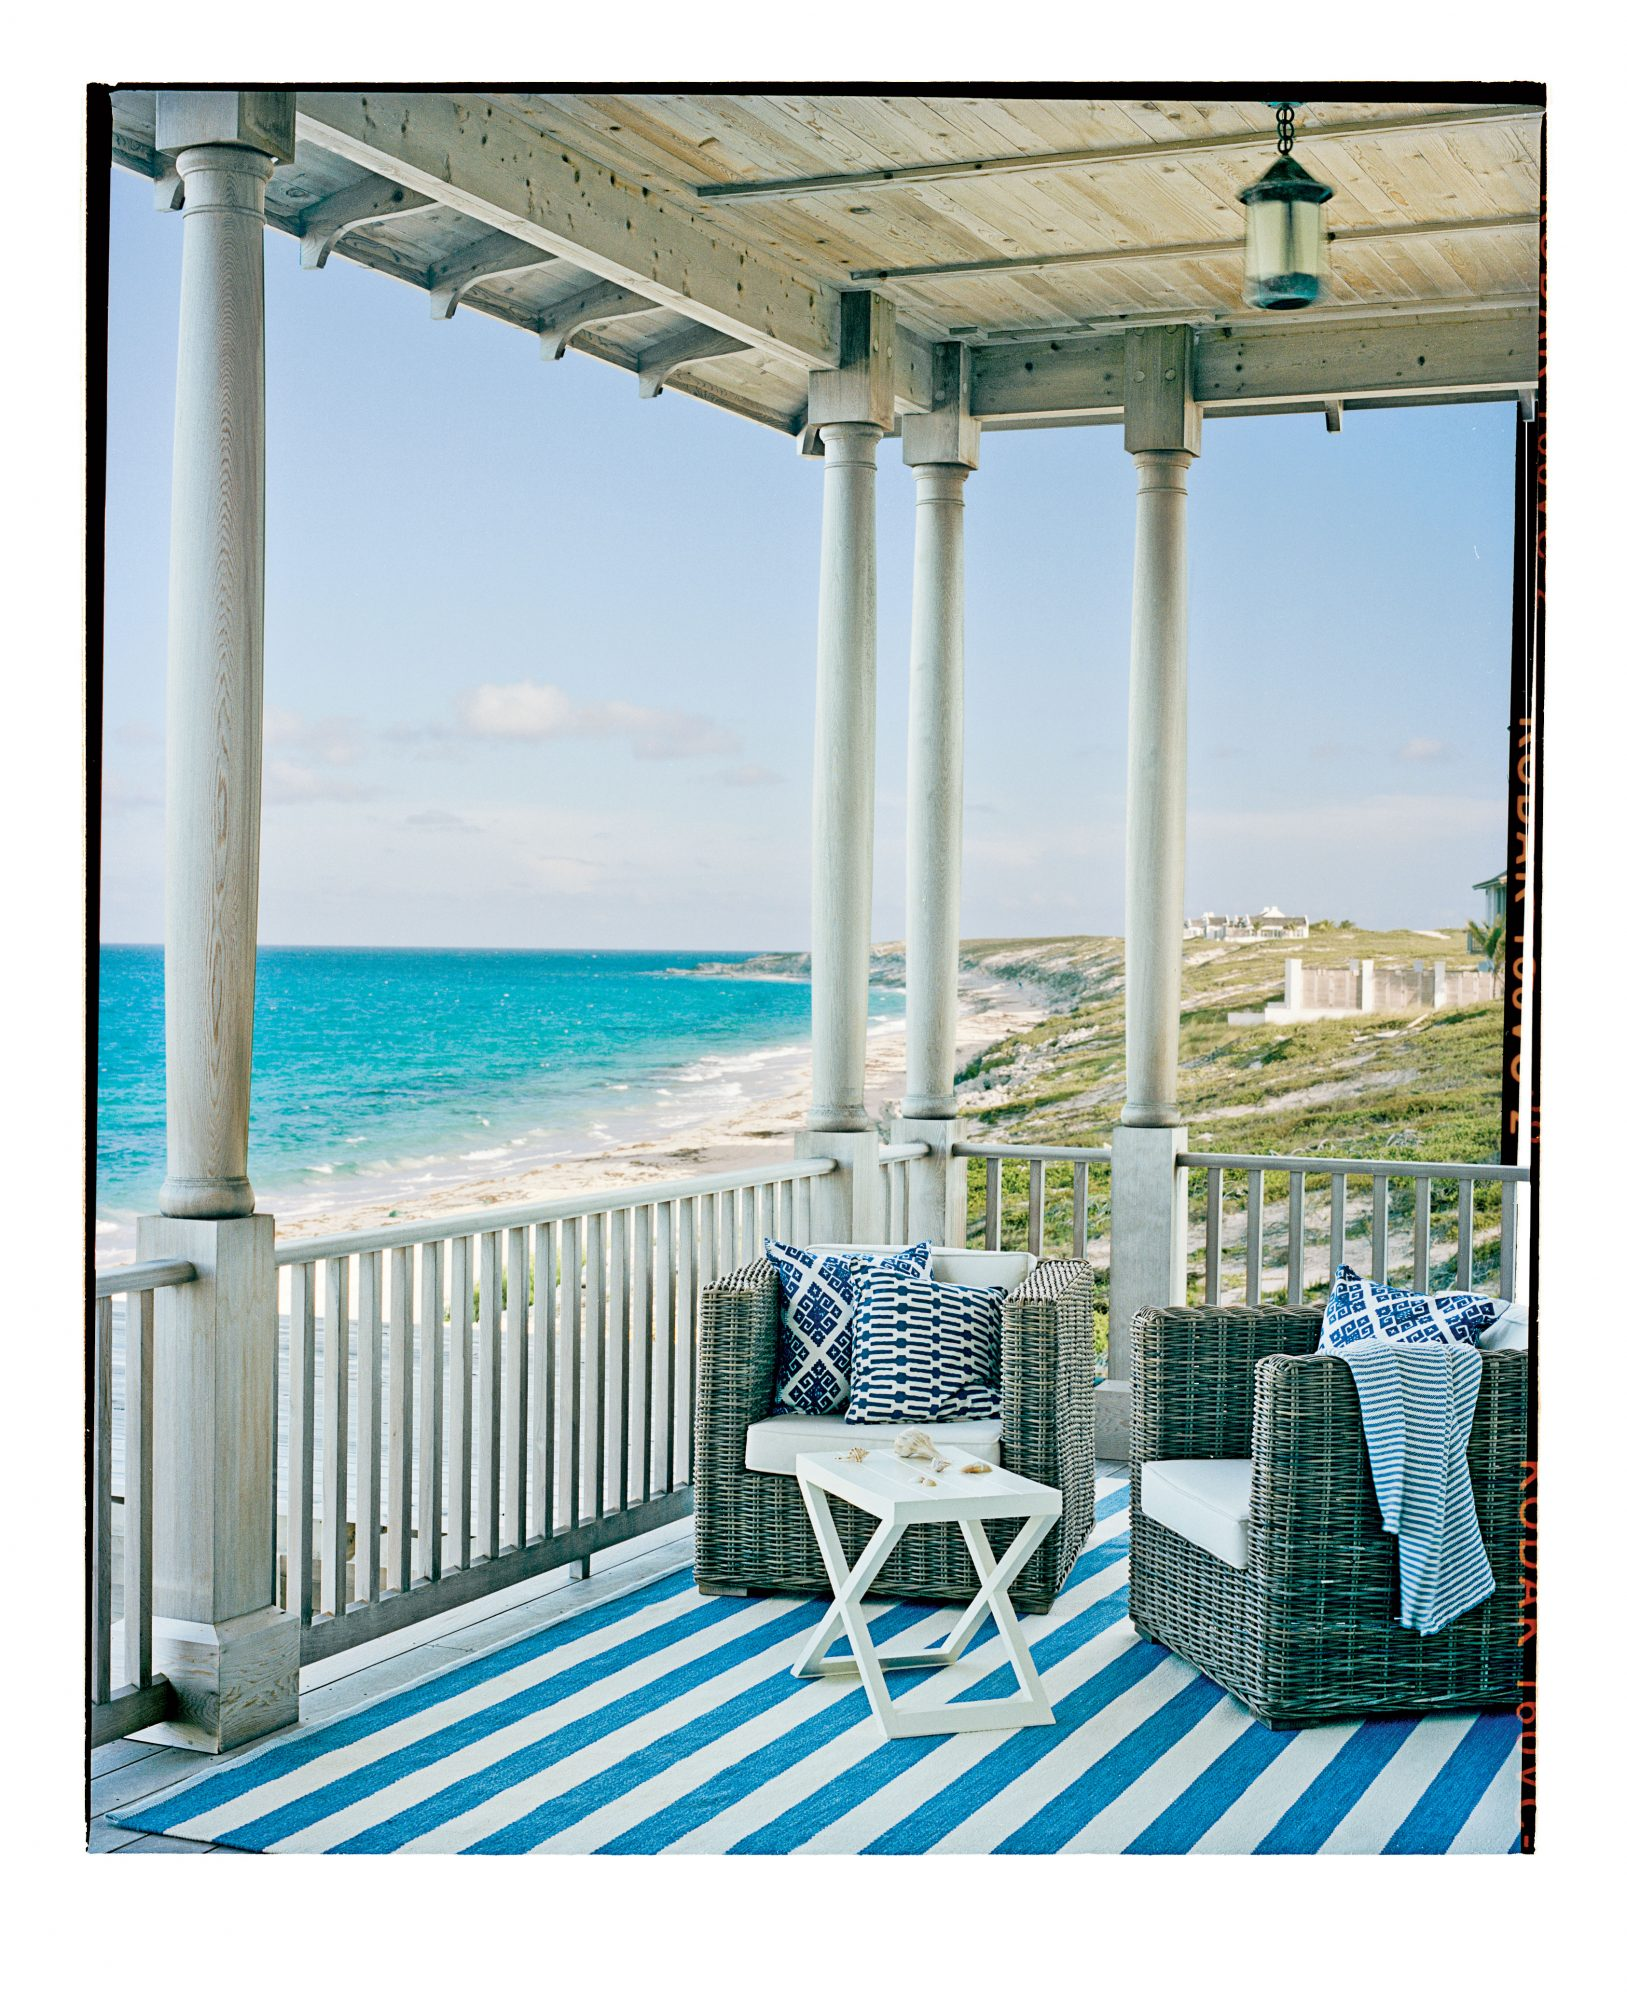 A bright blue-and-white striped rug brings a burst of color to this otherwise simple porch. Sturdy wicker chairs provide prime seating for a seaside view.